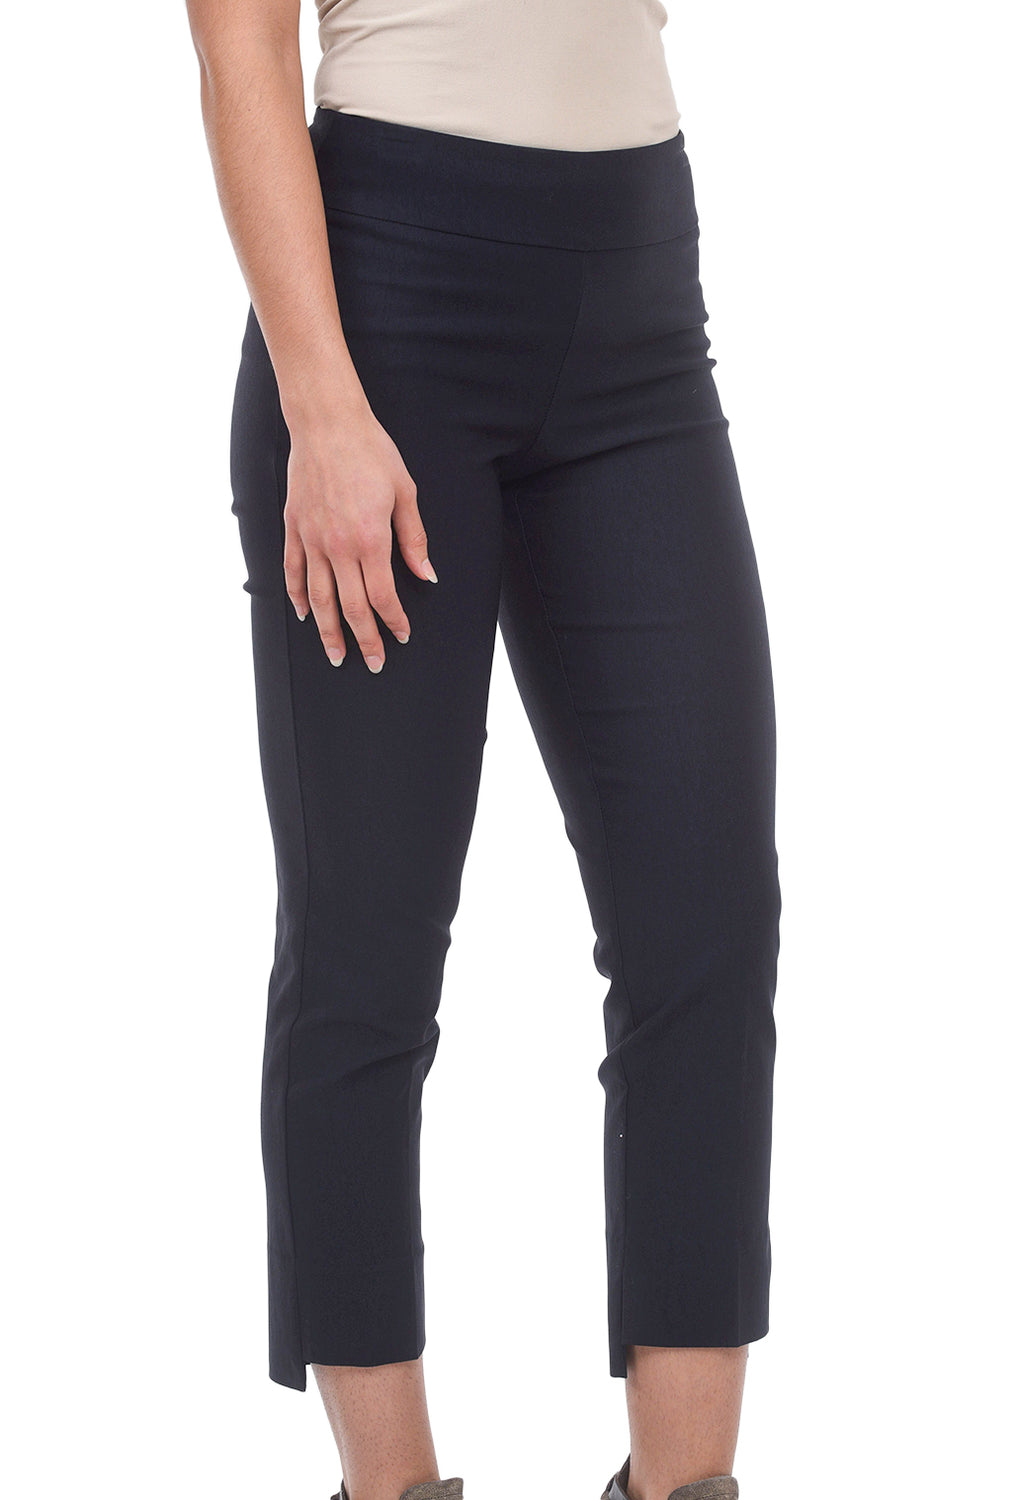 Estelle & Finn Step-Hem Stretch Trouser, Navy